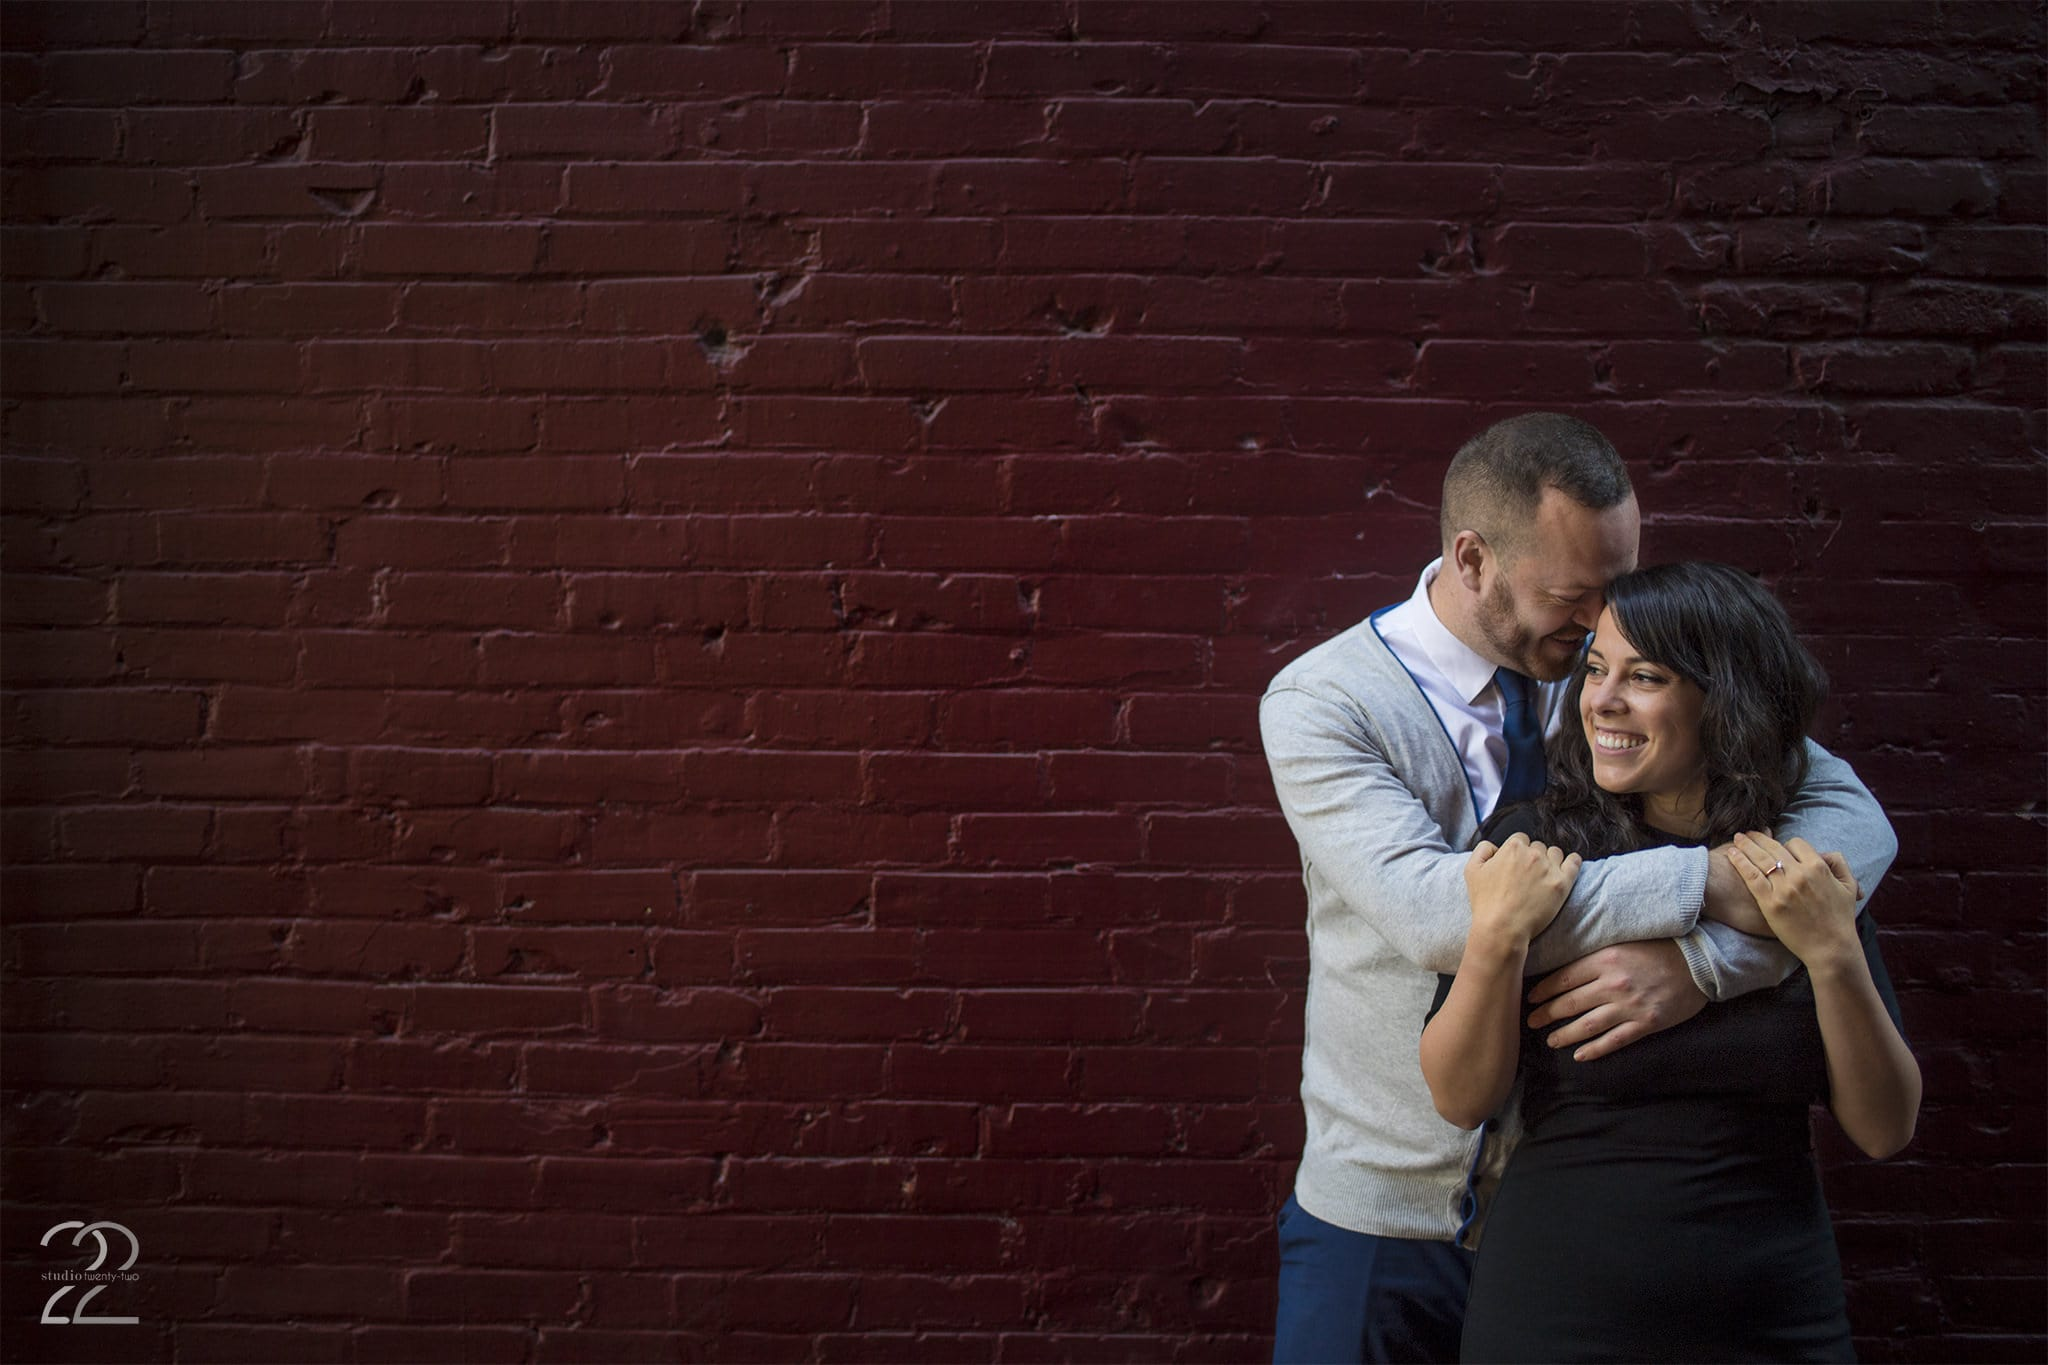 Gastown Engagement Photos in Vancouver